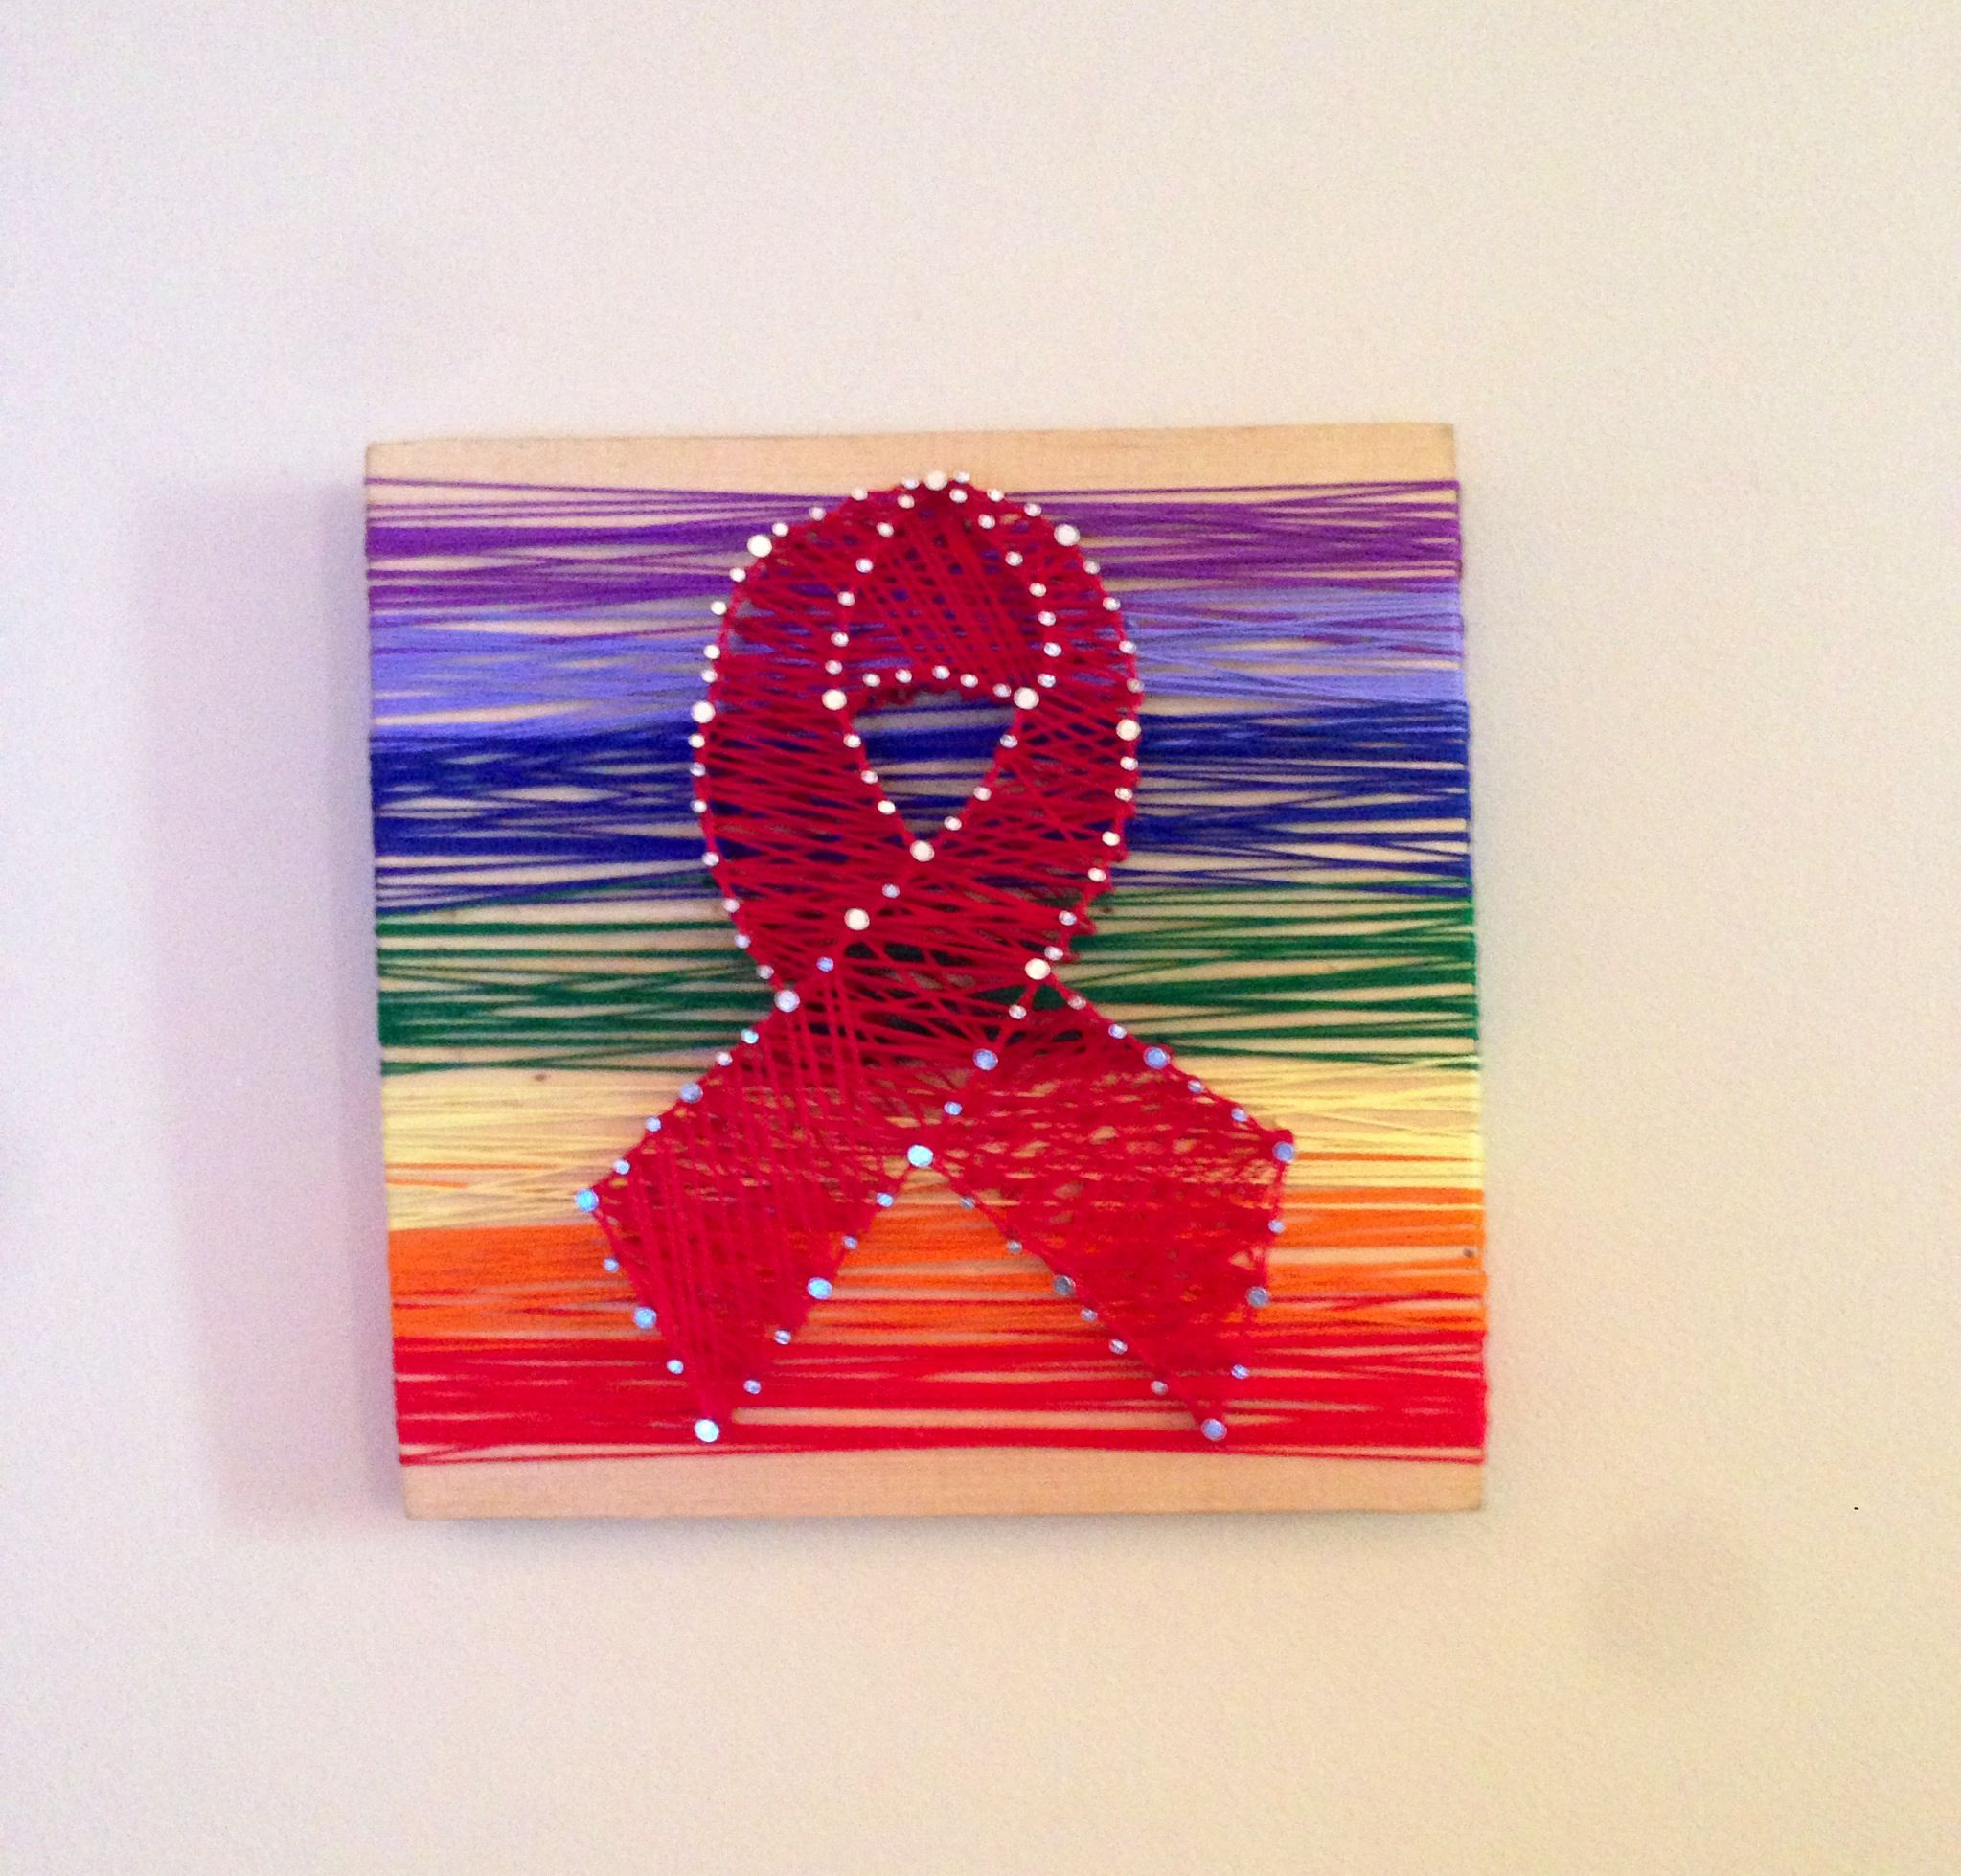 Handmade Aids Ribbon 7 14 In X 7 14 In Previous Pieces